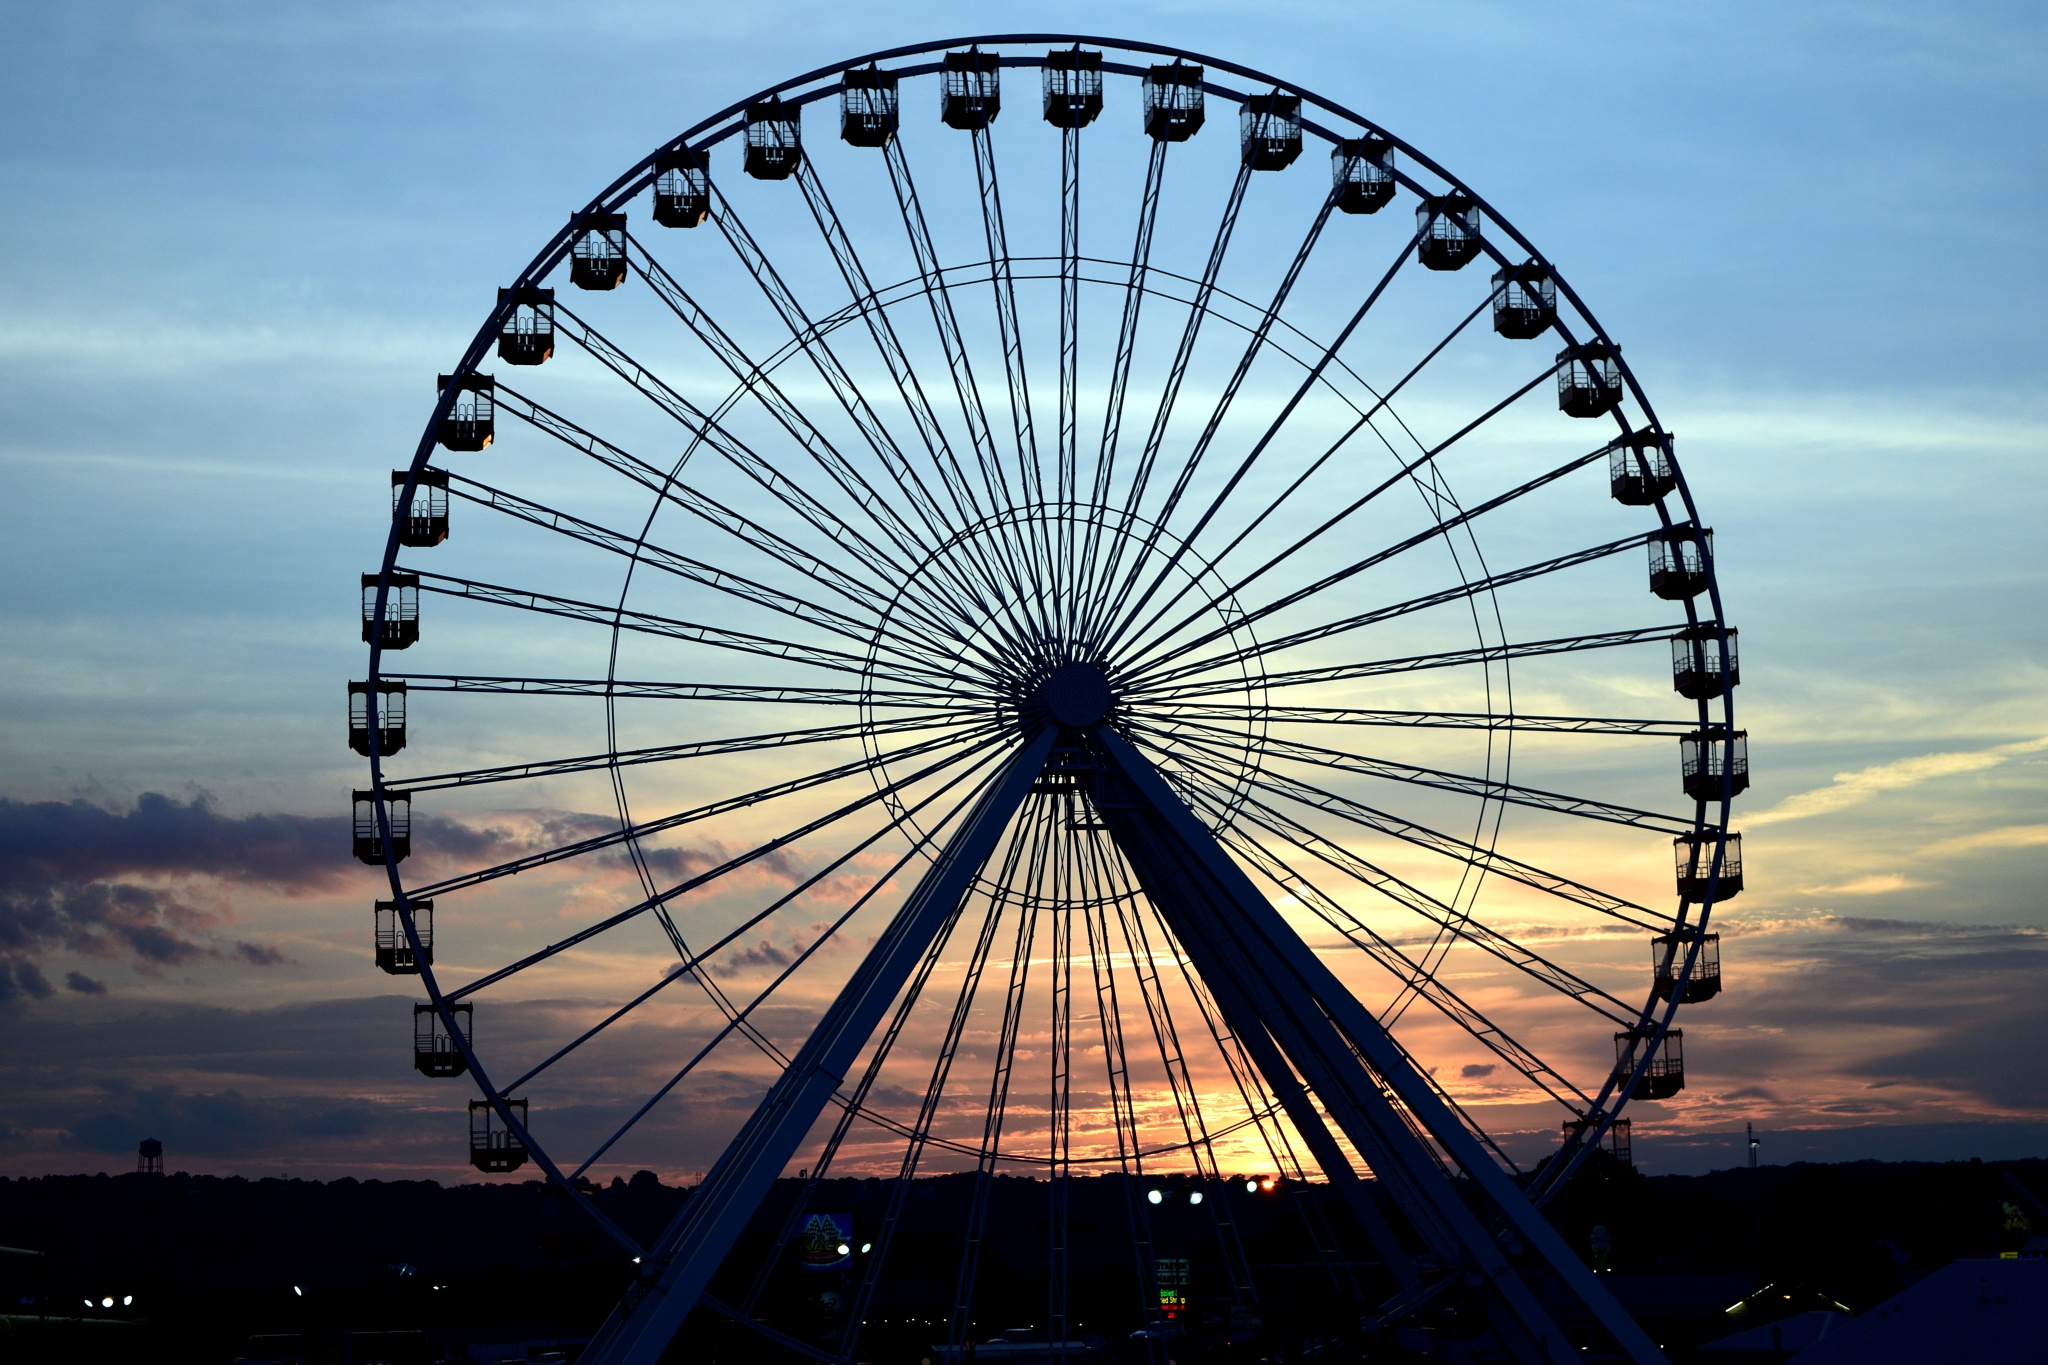 Branson Wheel at Sunset by dlucia1